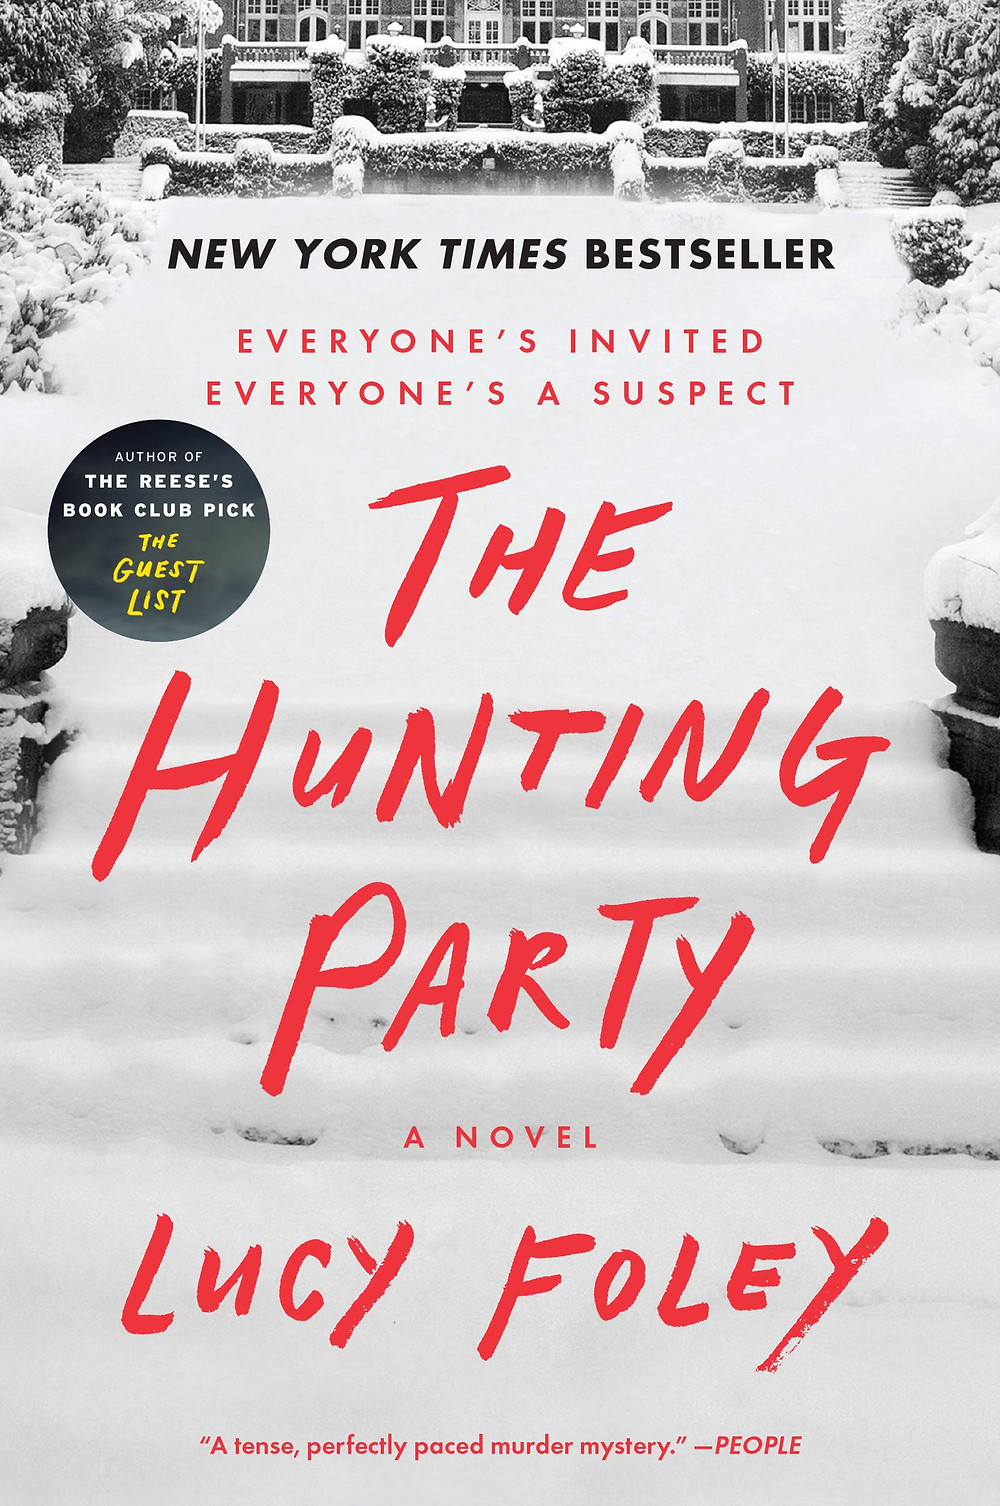 Book cover of The Hunting Party by Lucy Foley.